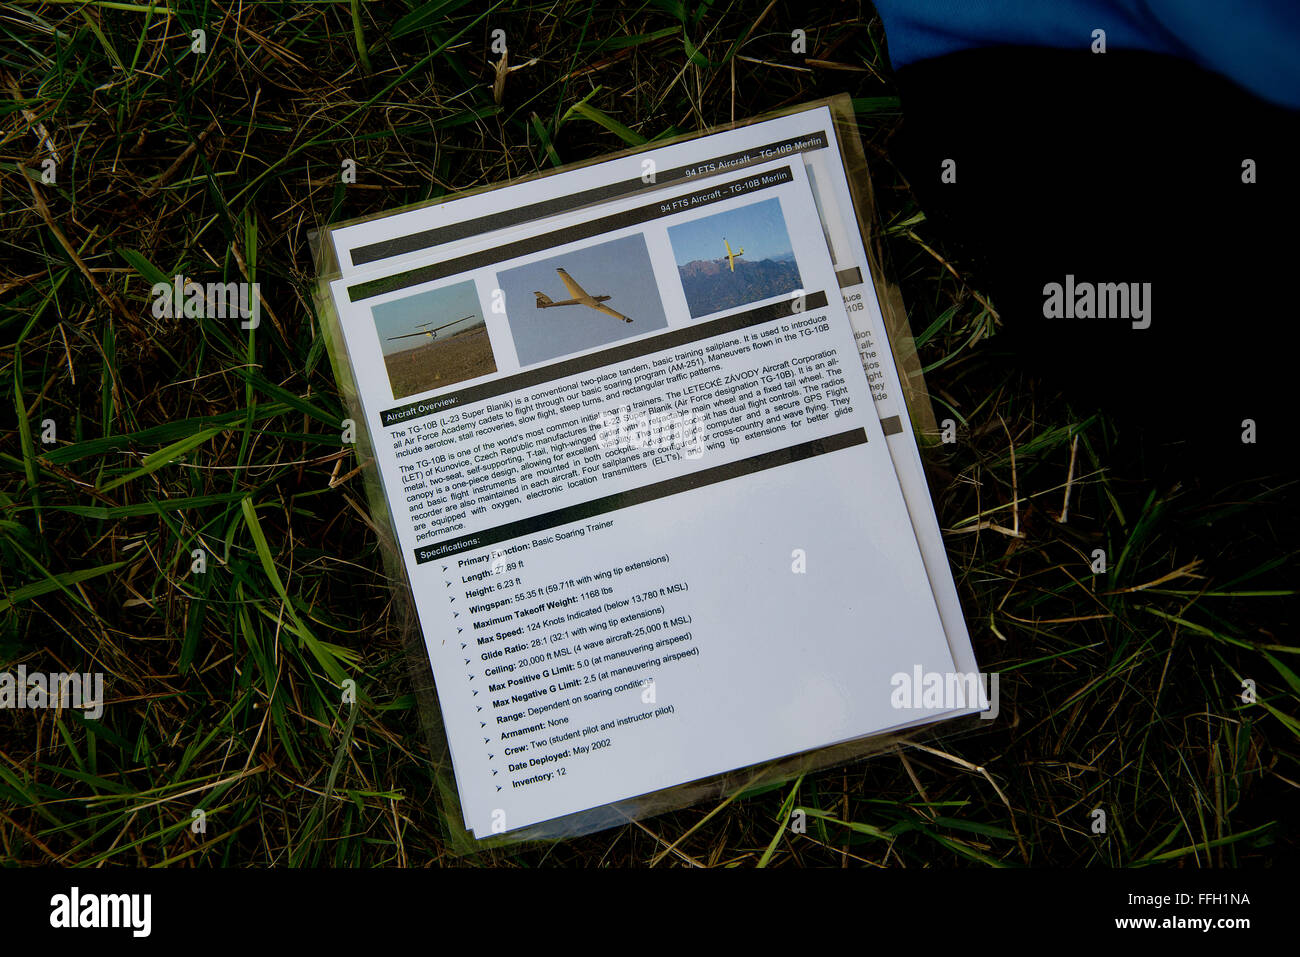 Northeast Glider Academy students use laminated L-23 Super Blanik glider fact sheets as study material. - Stock Image